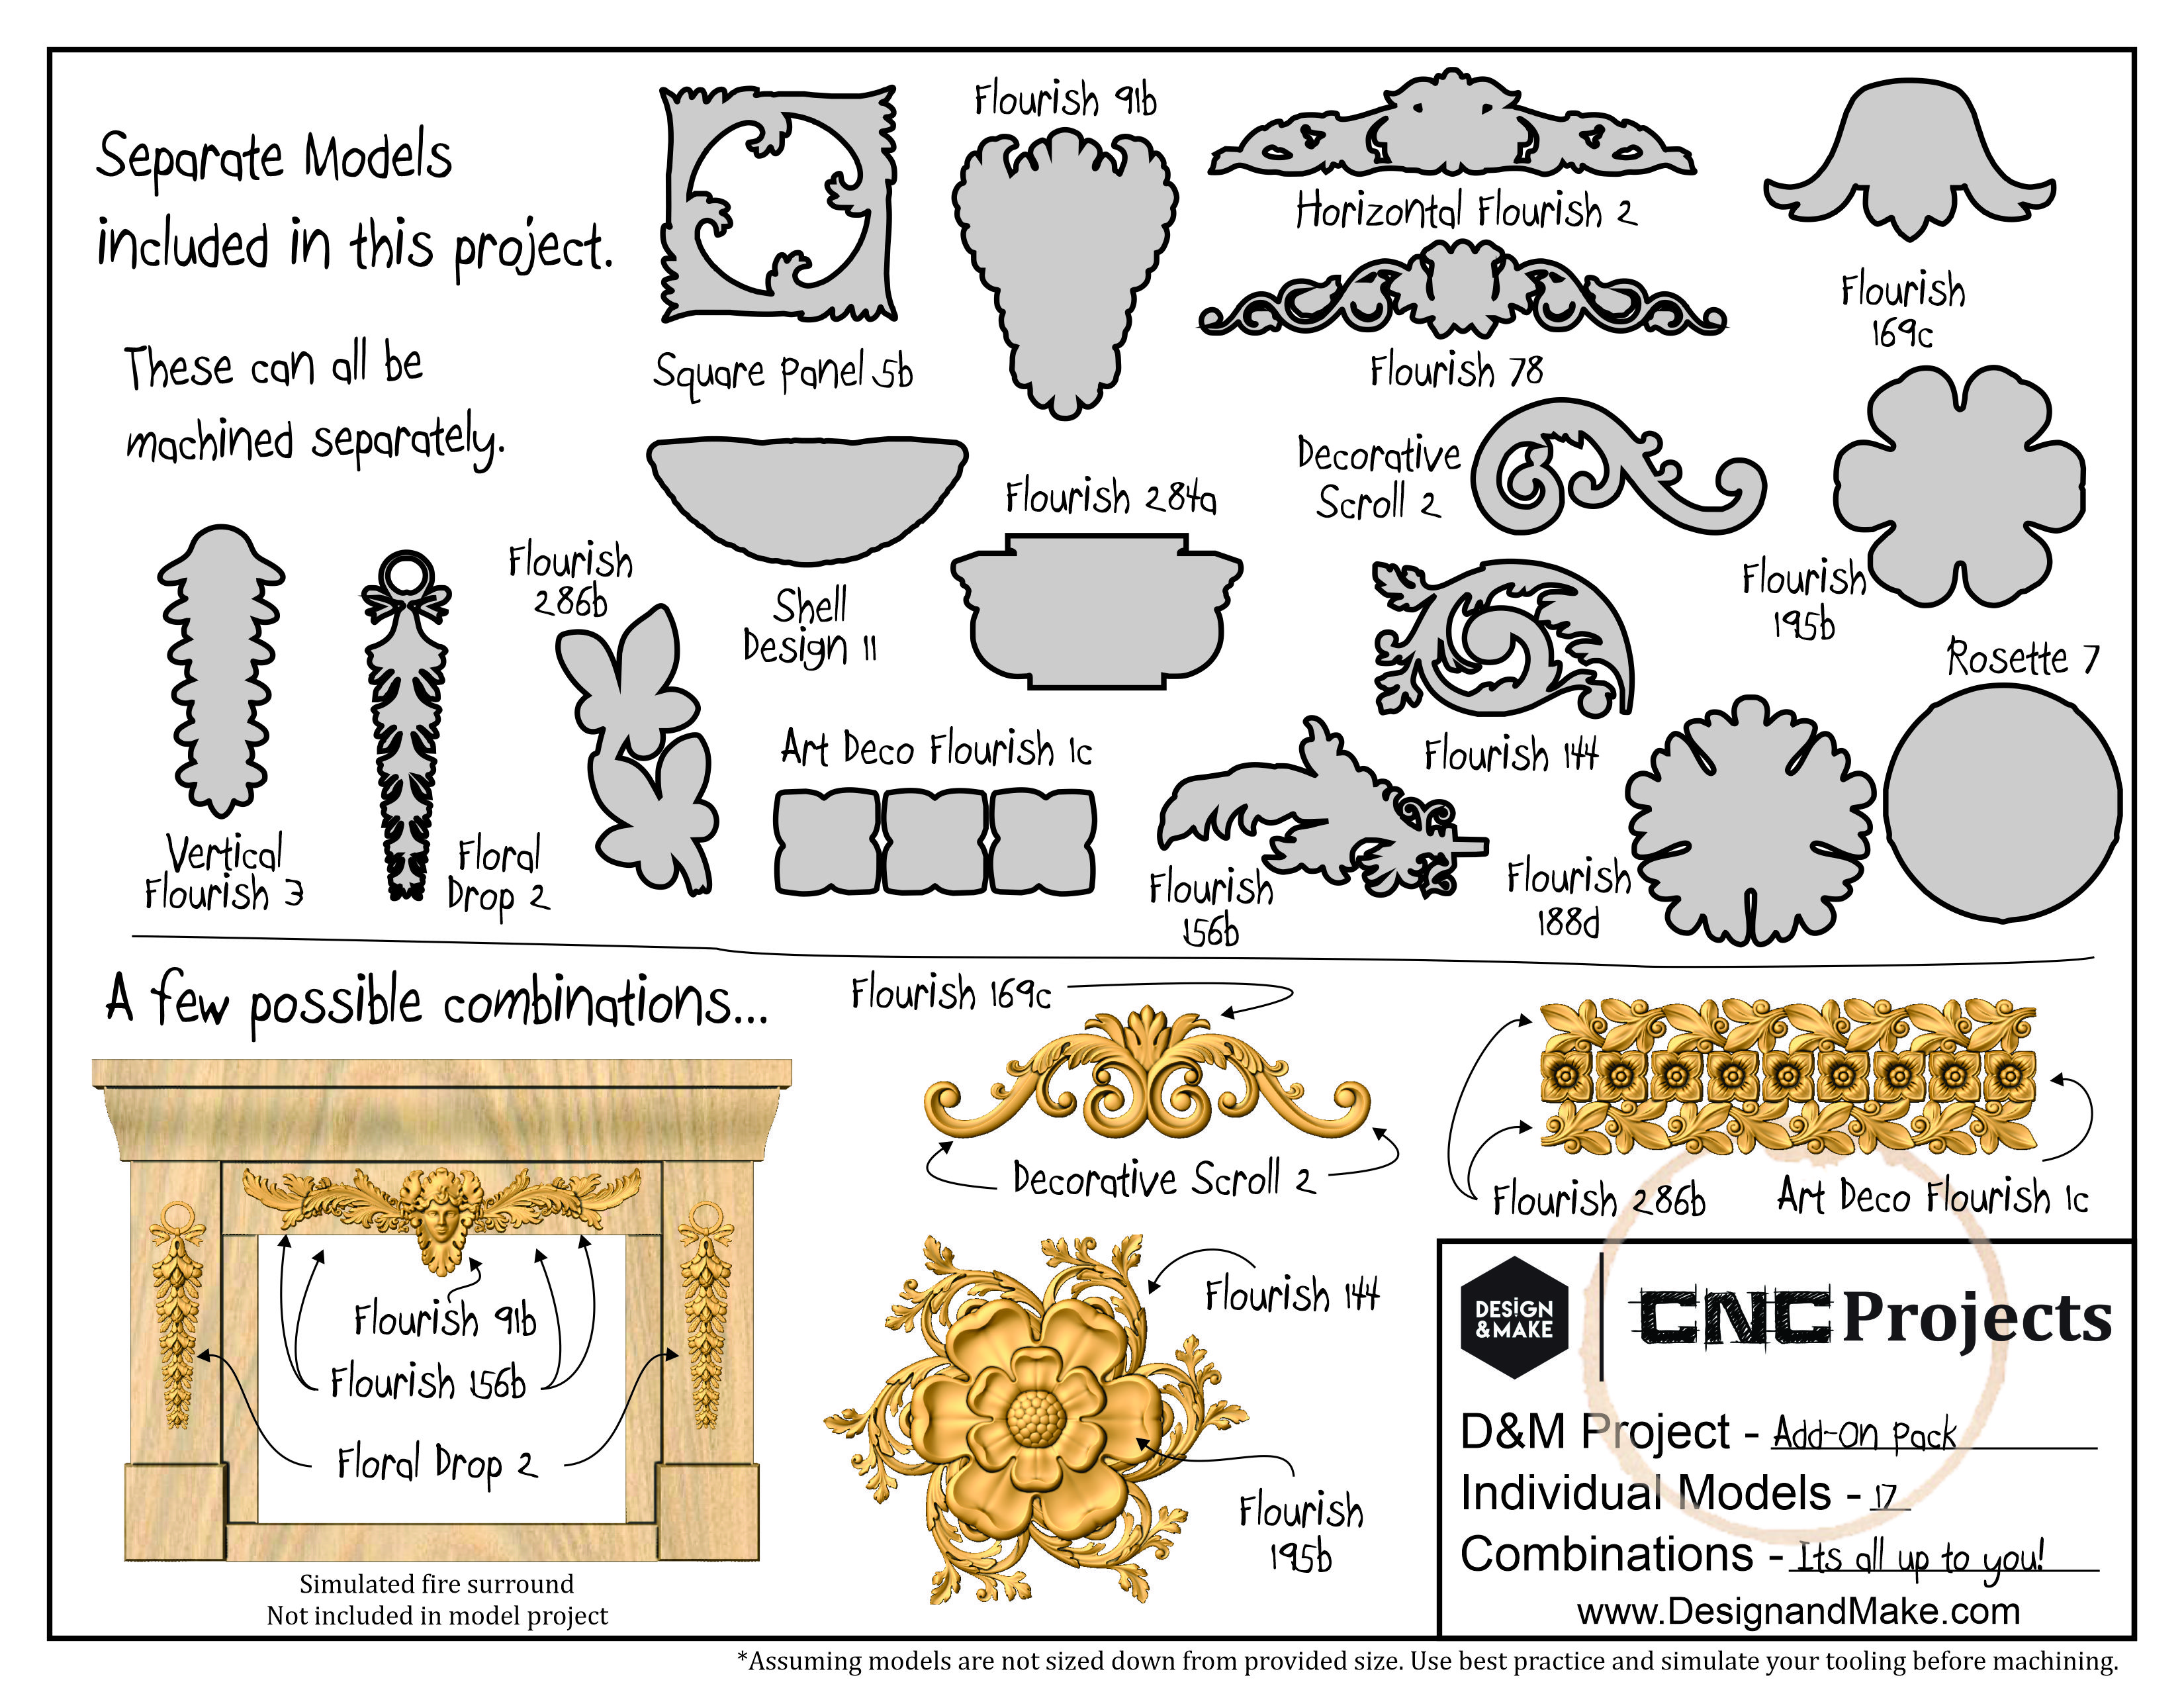 Architectural Elements - Add-on Pack - Project Sheet